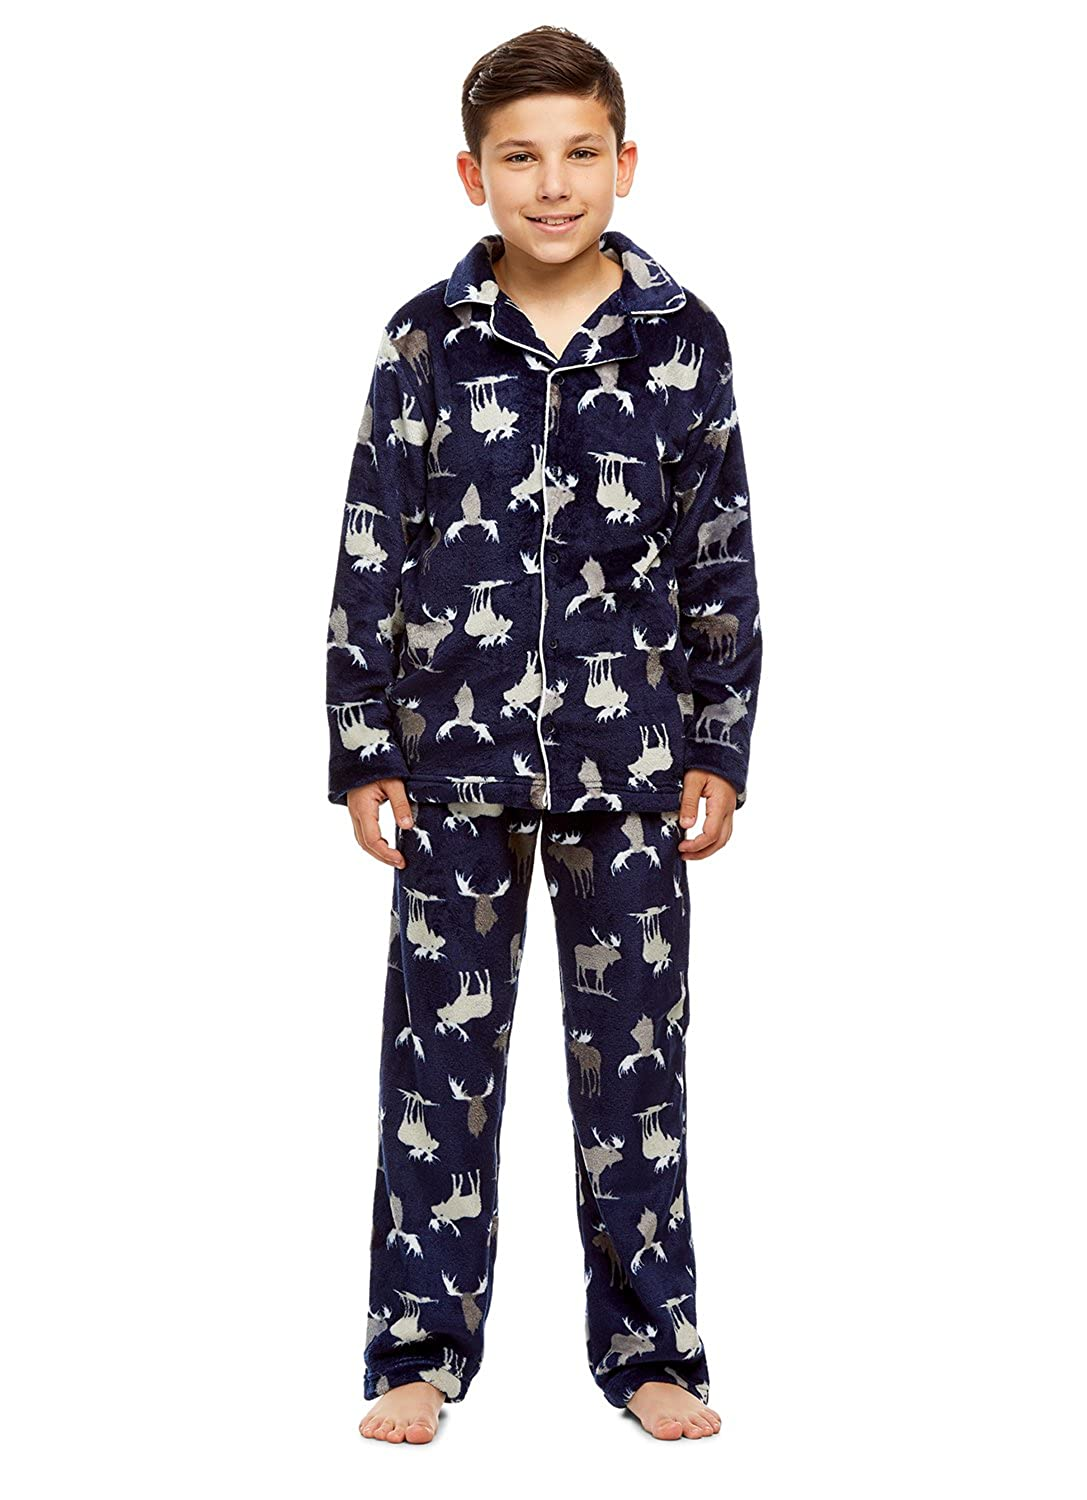 Boys 2 Piece Pajama Set | Long Sleeve Button Down Top PJ Pants